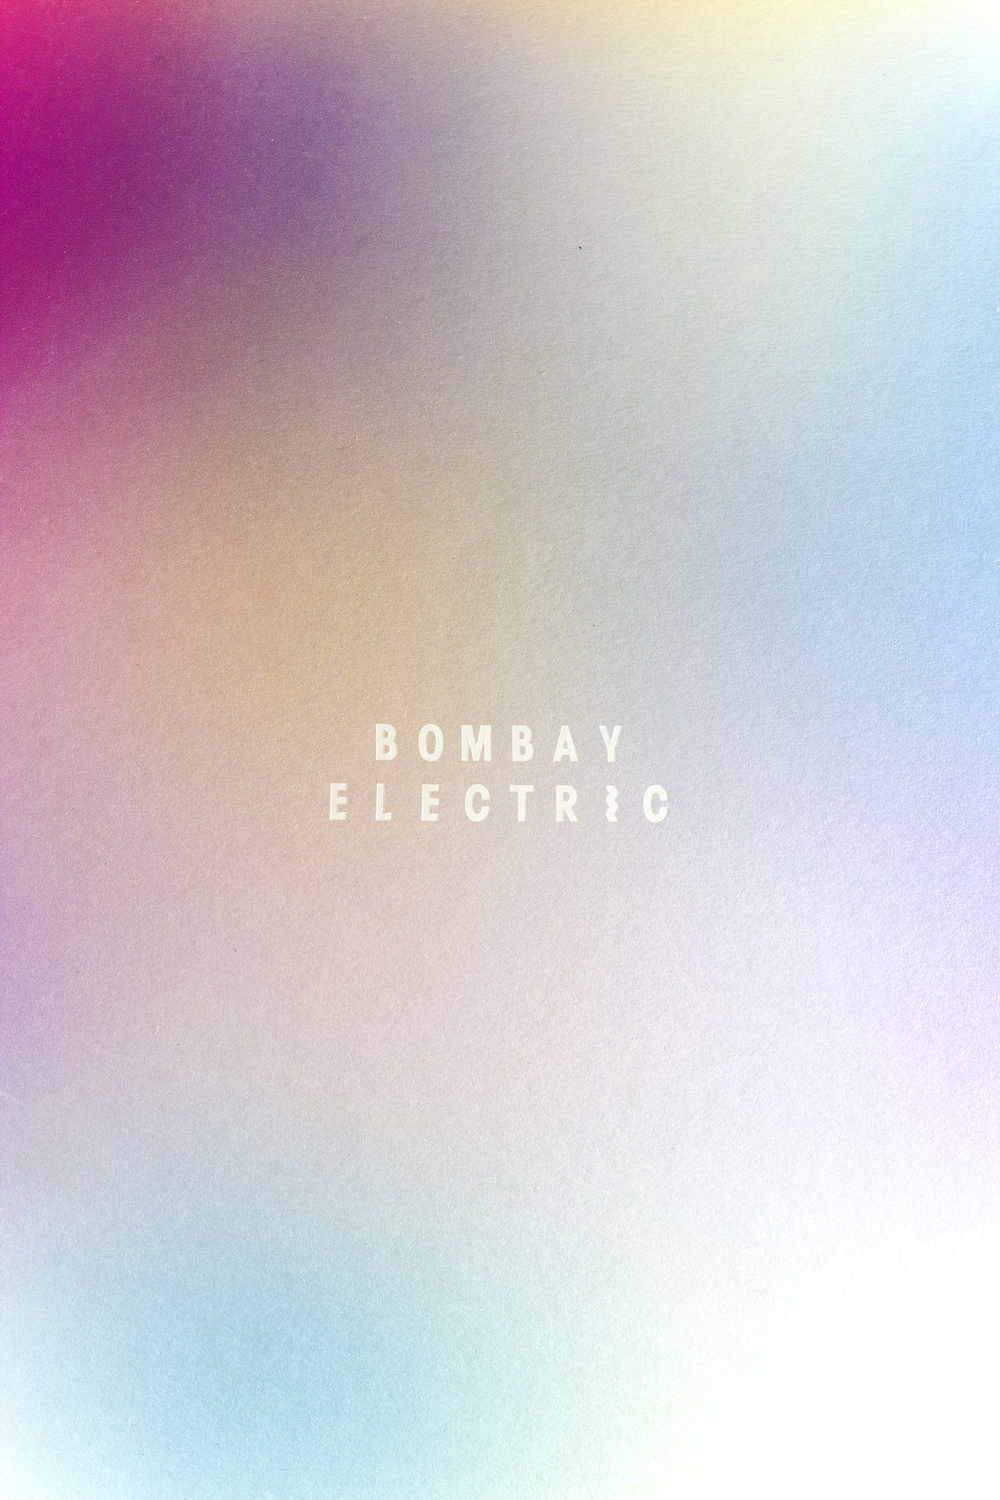 Michael_Thorsby_-_Bombay_Electric_-_6.jpg